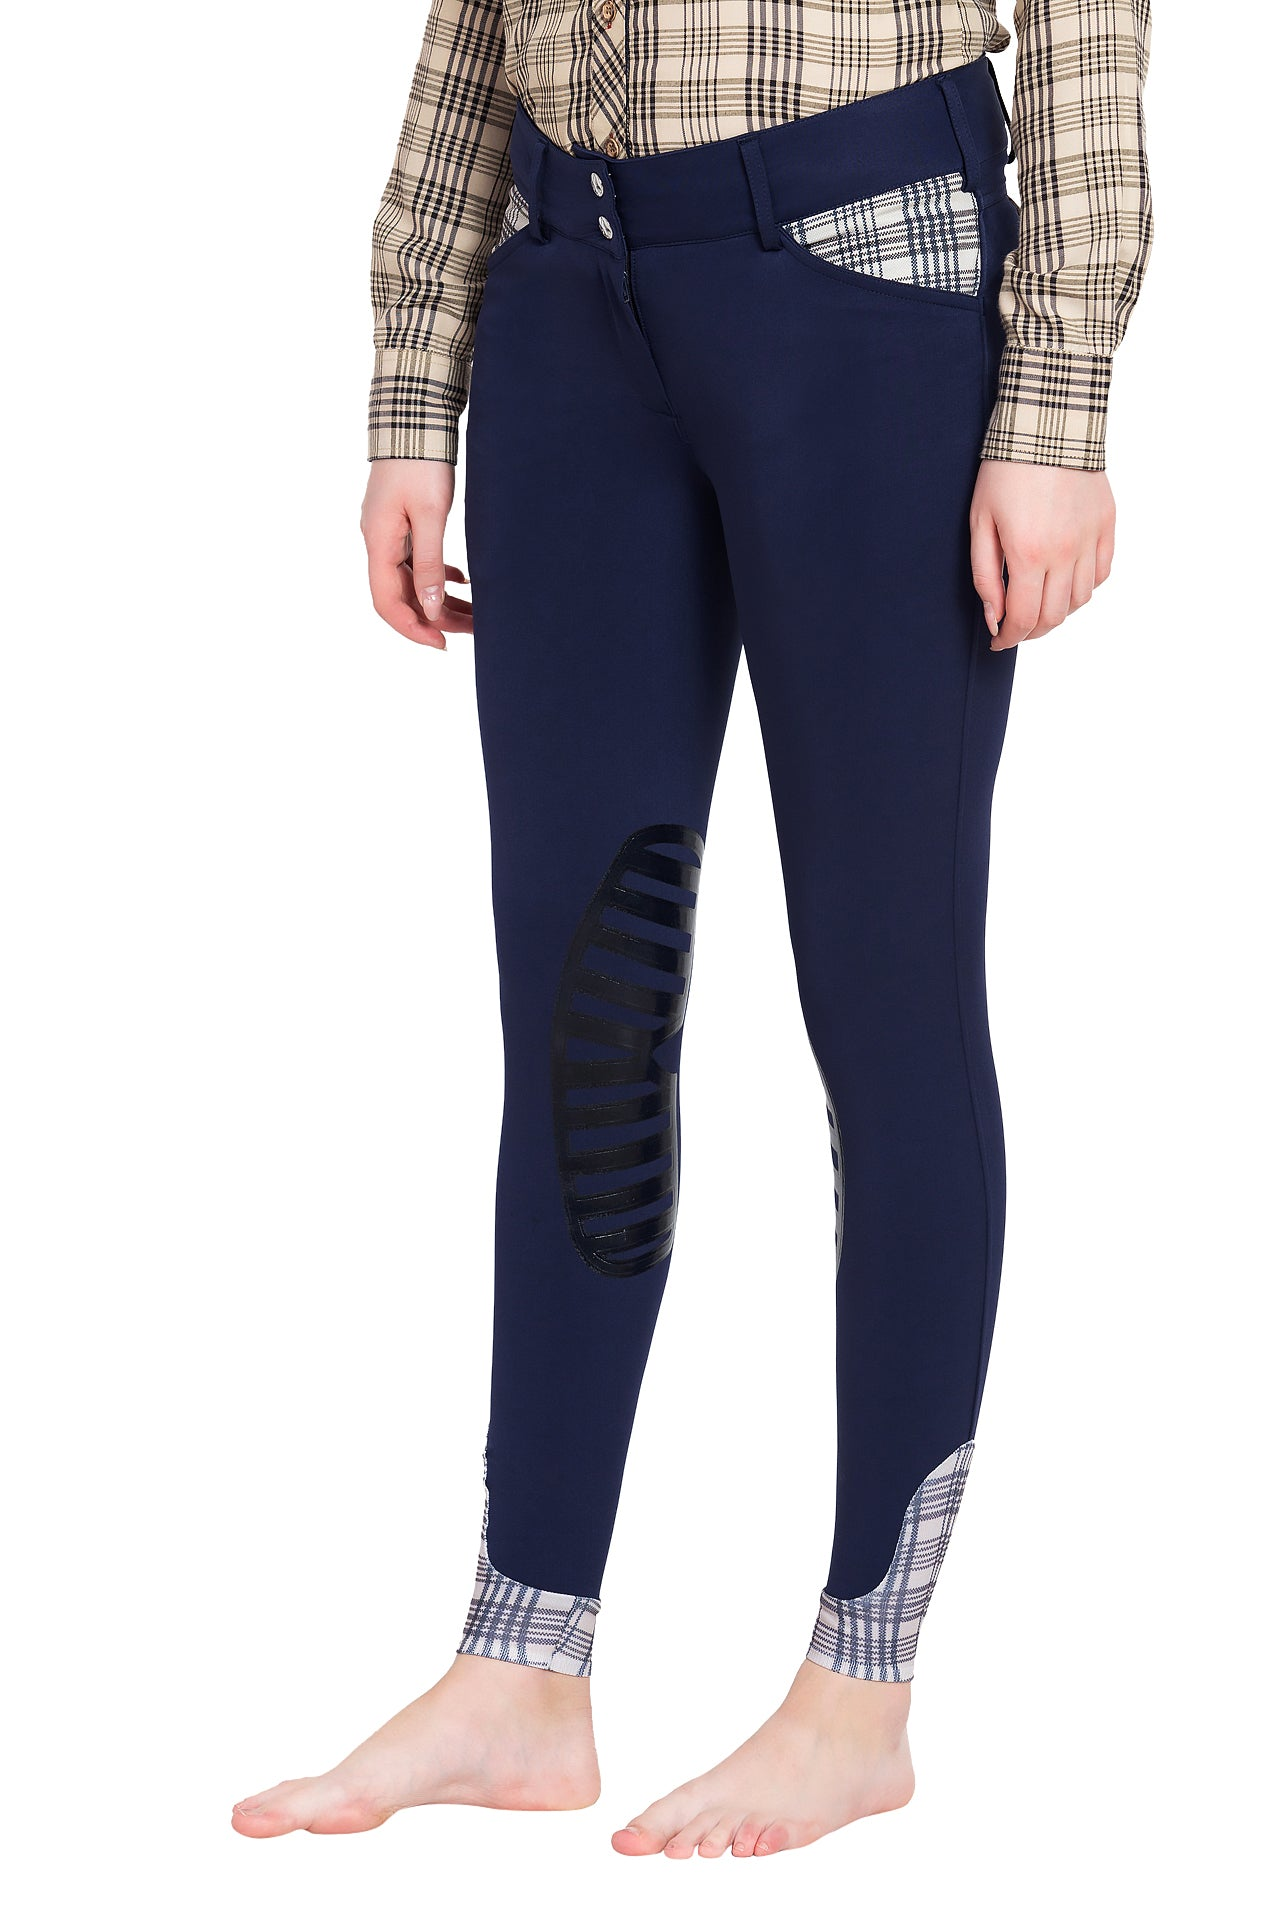 Baker Ladies Pro Silicone Knee Patch Breeches_1